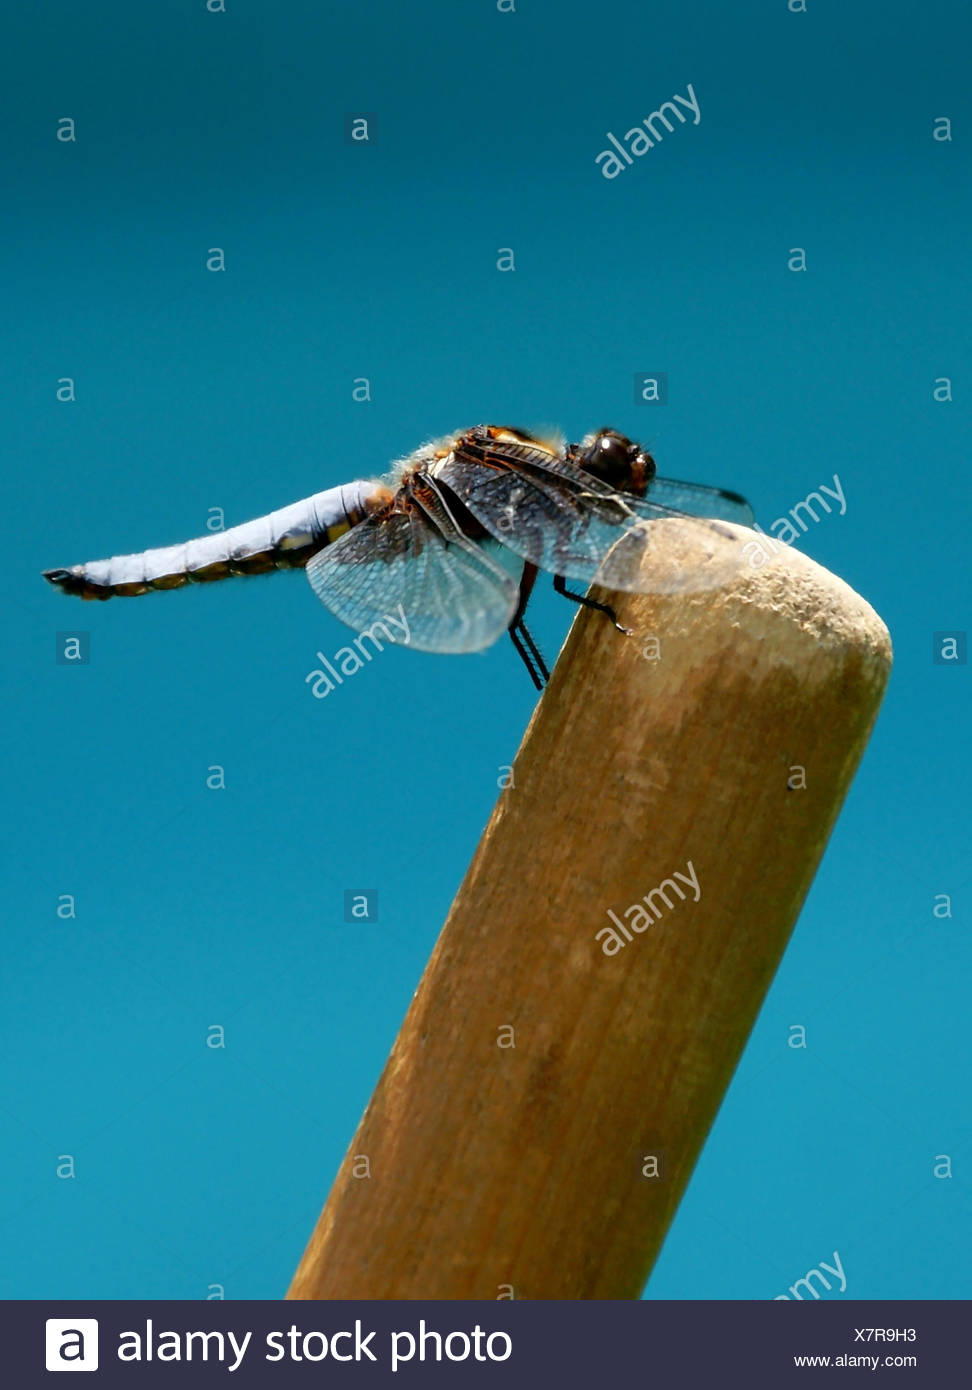 fodder insect spider fly doll to gorge engulf devour page sheet bee fodder - Stock Image